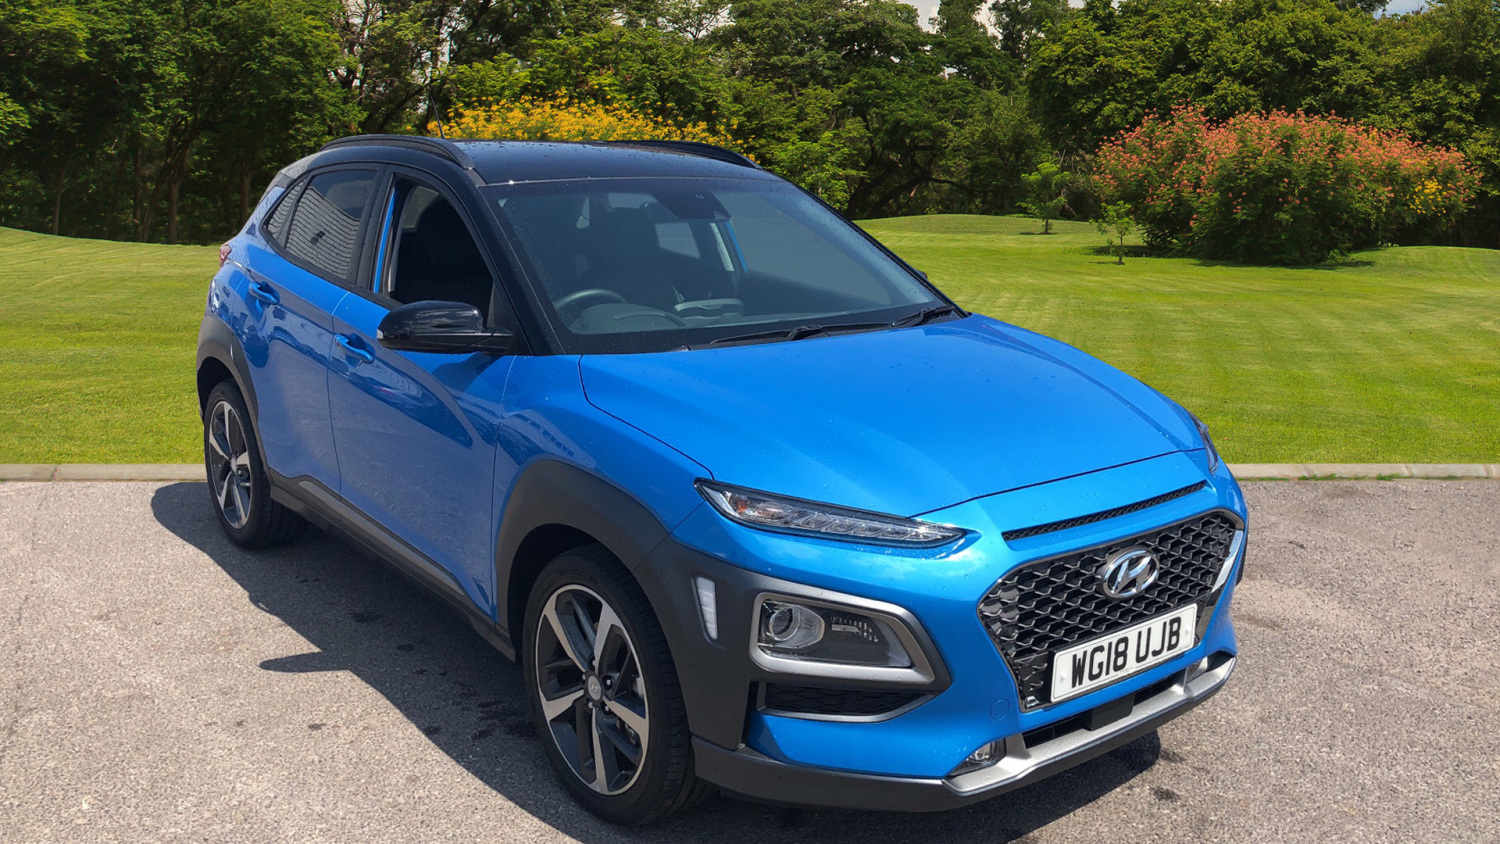 buy online hyundai kona 1 6t gdi blue drive premium gt 5dr 4wd dct petrol hatchback for sale. Black Bedroom Furniture Sets. Home Design Ideas